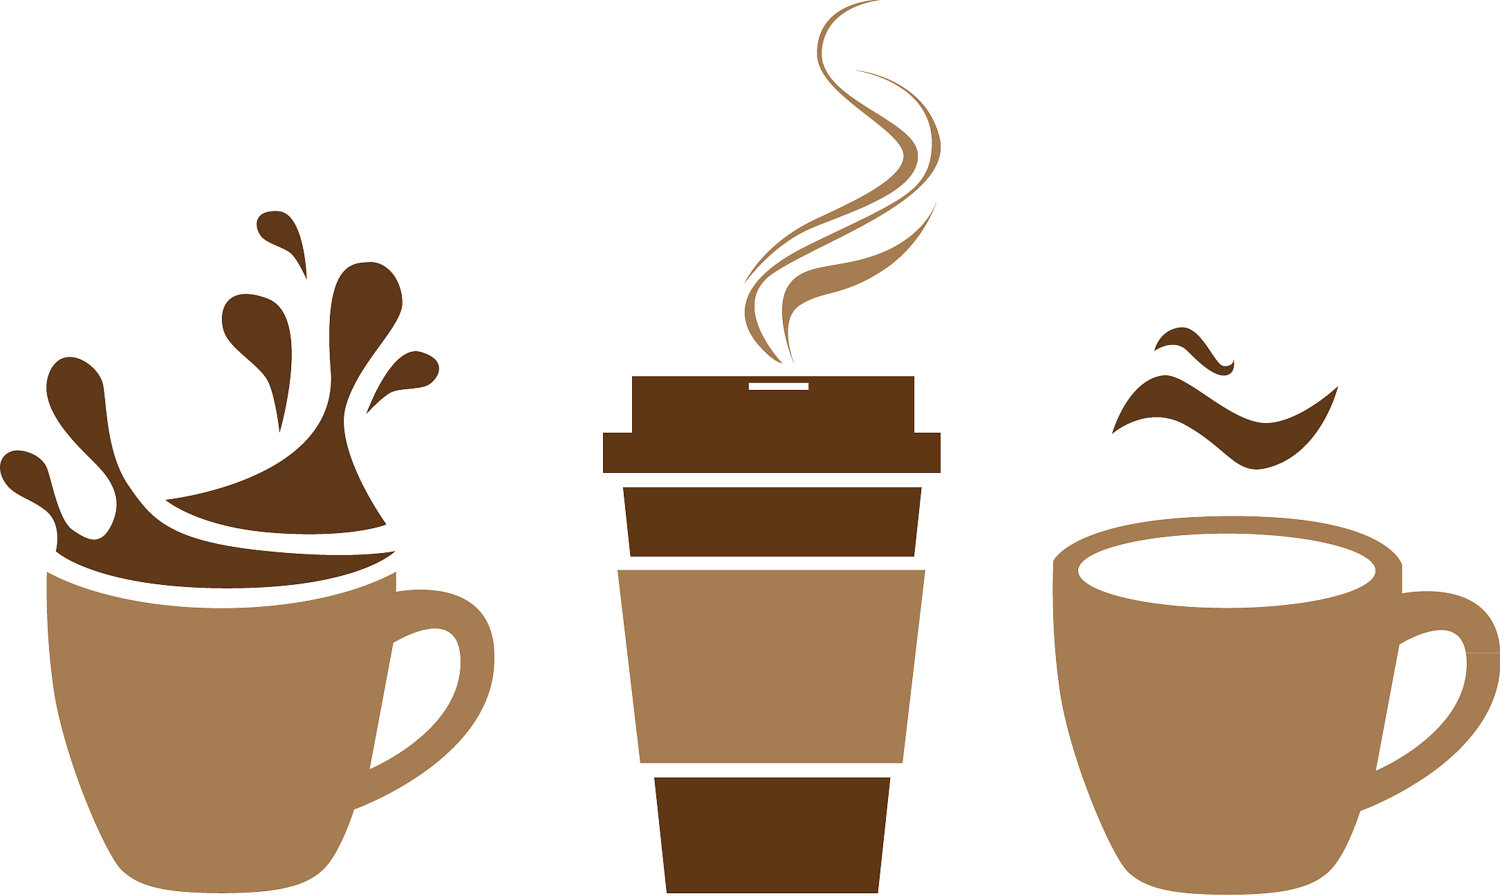 Graphic free download best. Cup clipart brown coffee mug